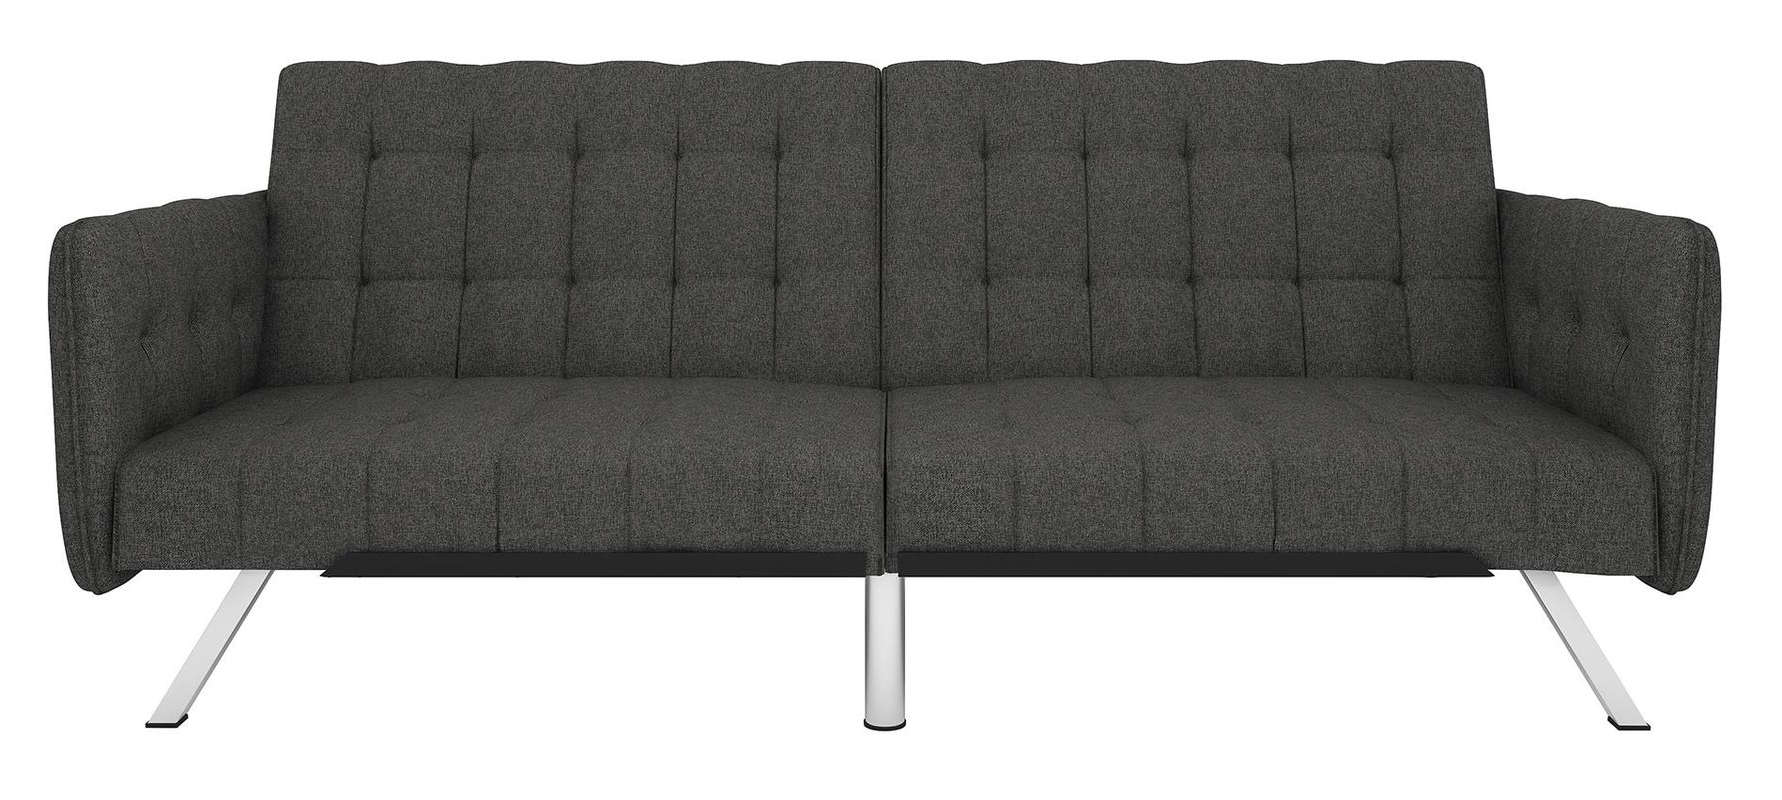 Joss & Main Intended For Convertible Sofas (Gallery 14 of 20)